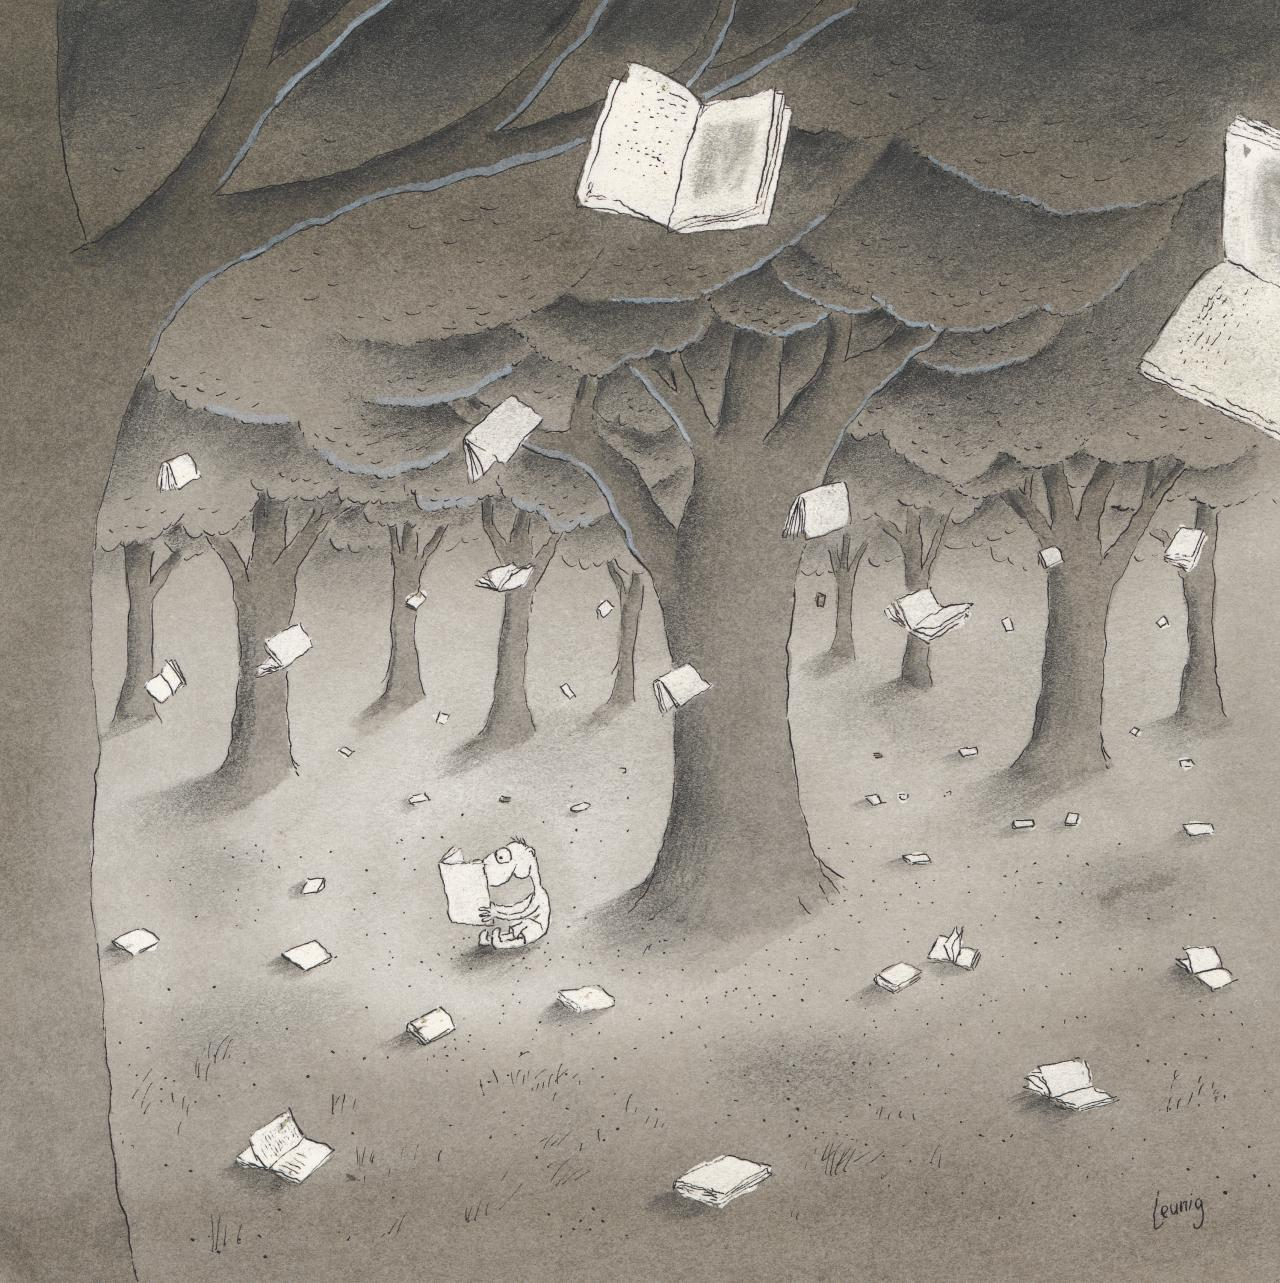 Books falling from the trees